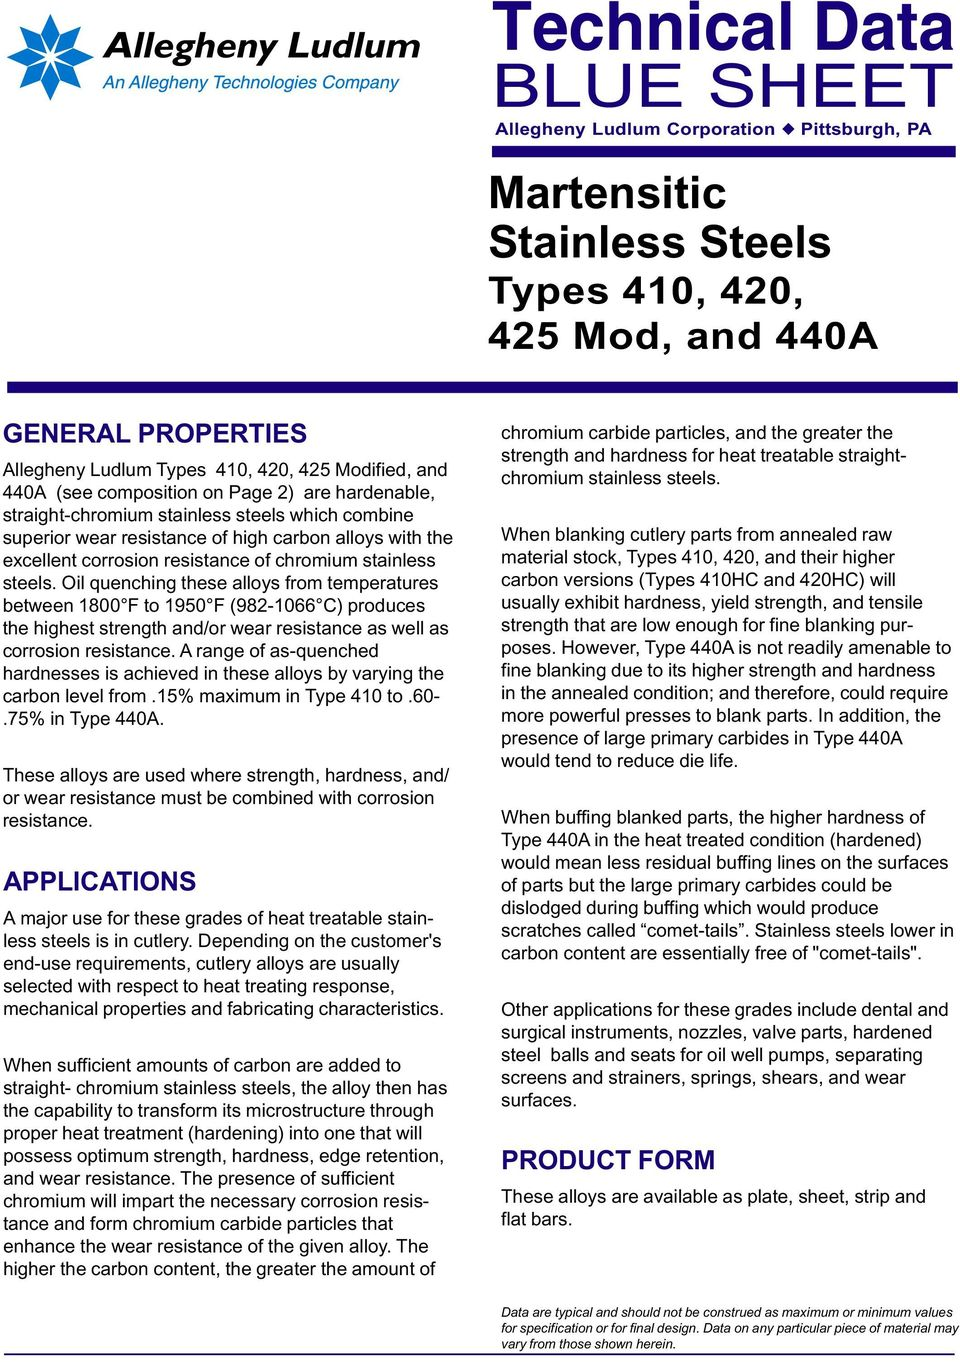 chromium stainless steels. Oil quenching these alloys from temperatures between 1800 F to 1950 F (982-1066 C) produces the highest strength and/or wear resistance as well as corrosion resistance.